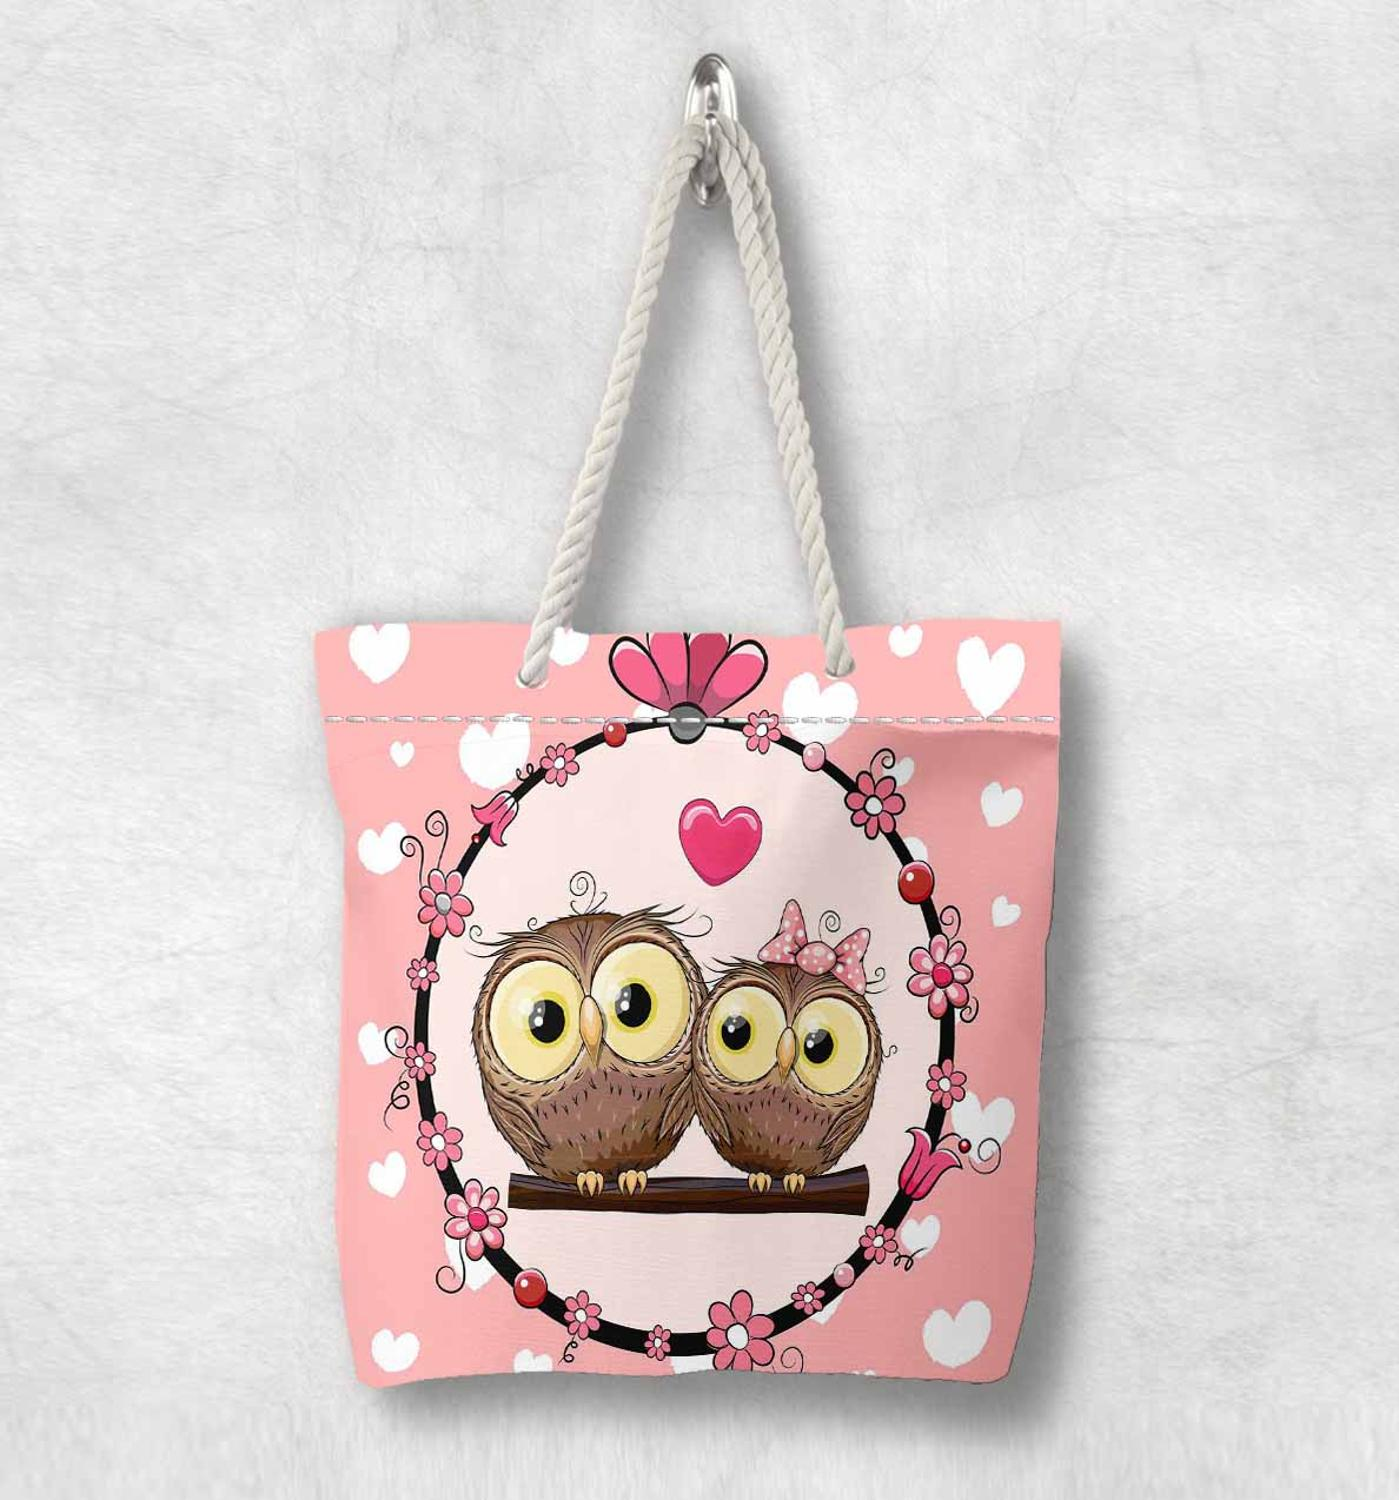 Else Pink Floor White Hearts Cute Owls New Fashion White Rope Handle Canvas Bag  Cartoon Print Zippered Tote Bag Shoulder Bag